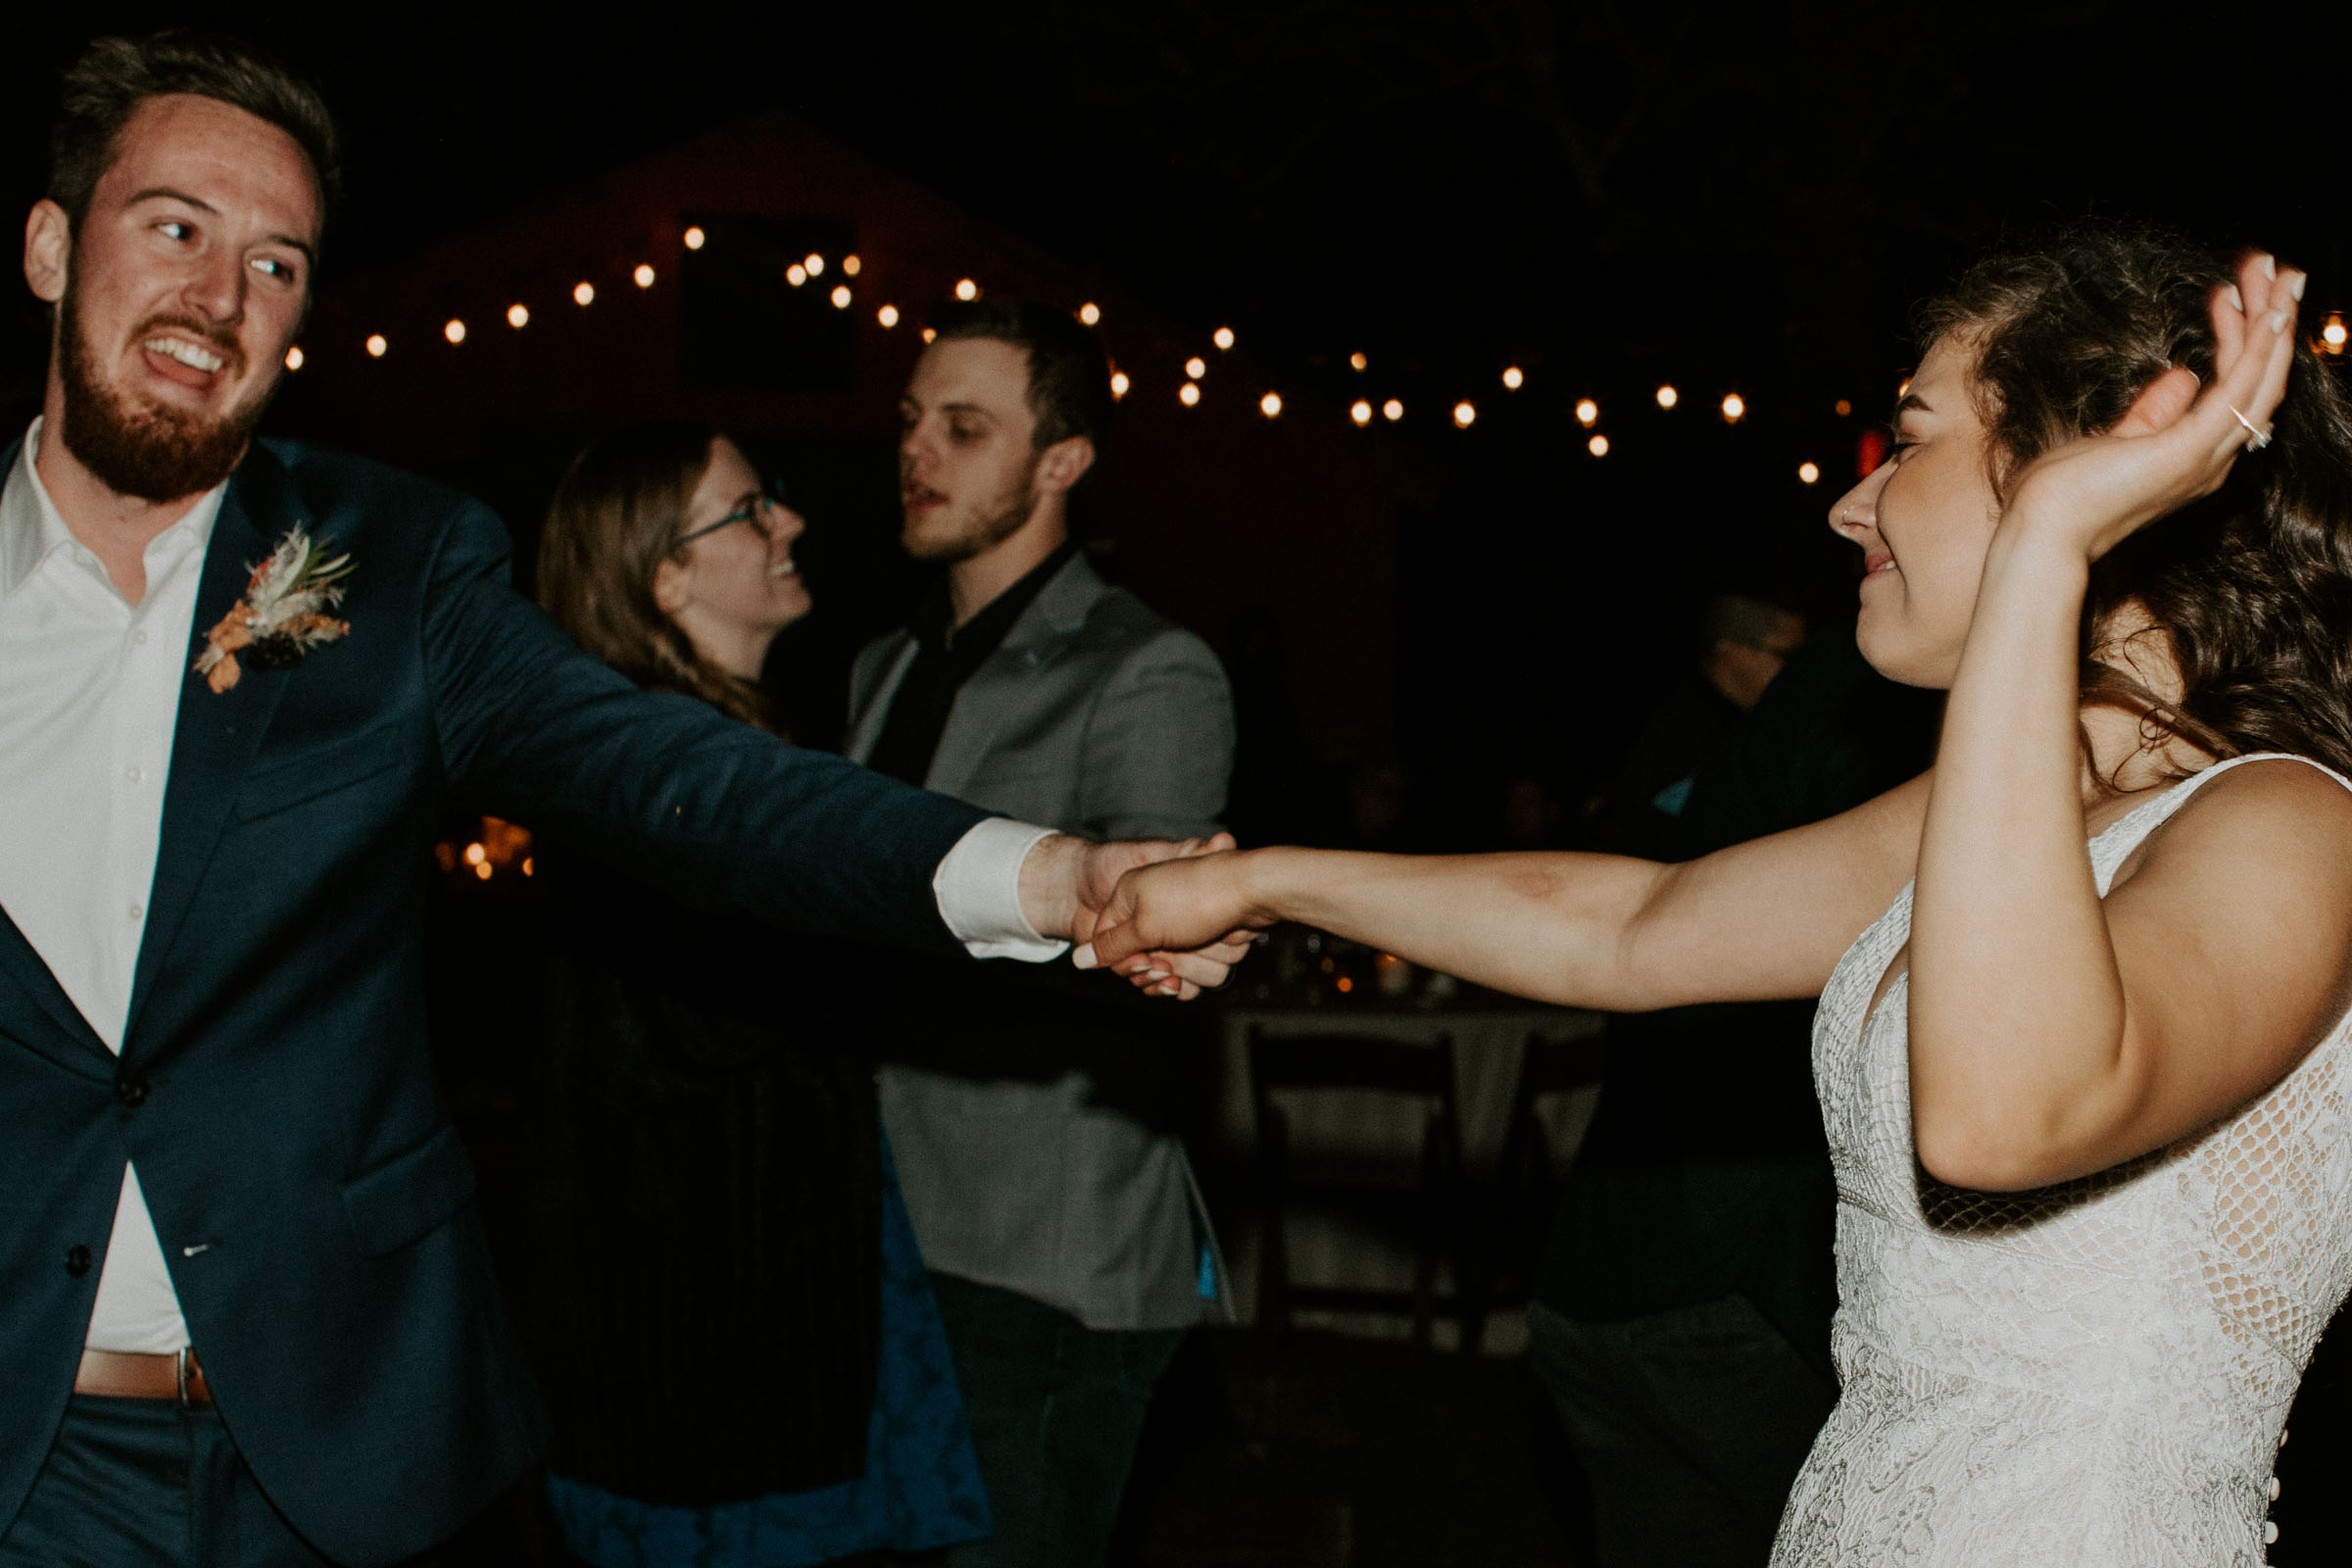 Groom spinning his bride and dancing with her during their outdoor wedding reception